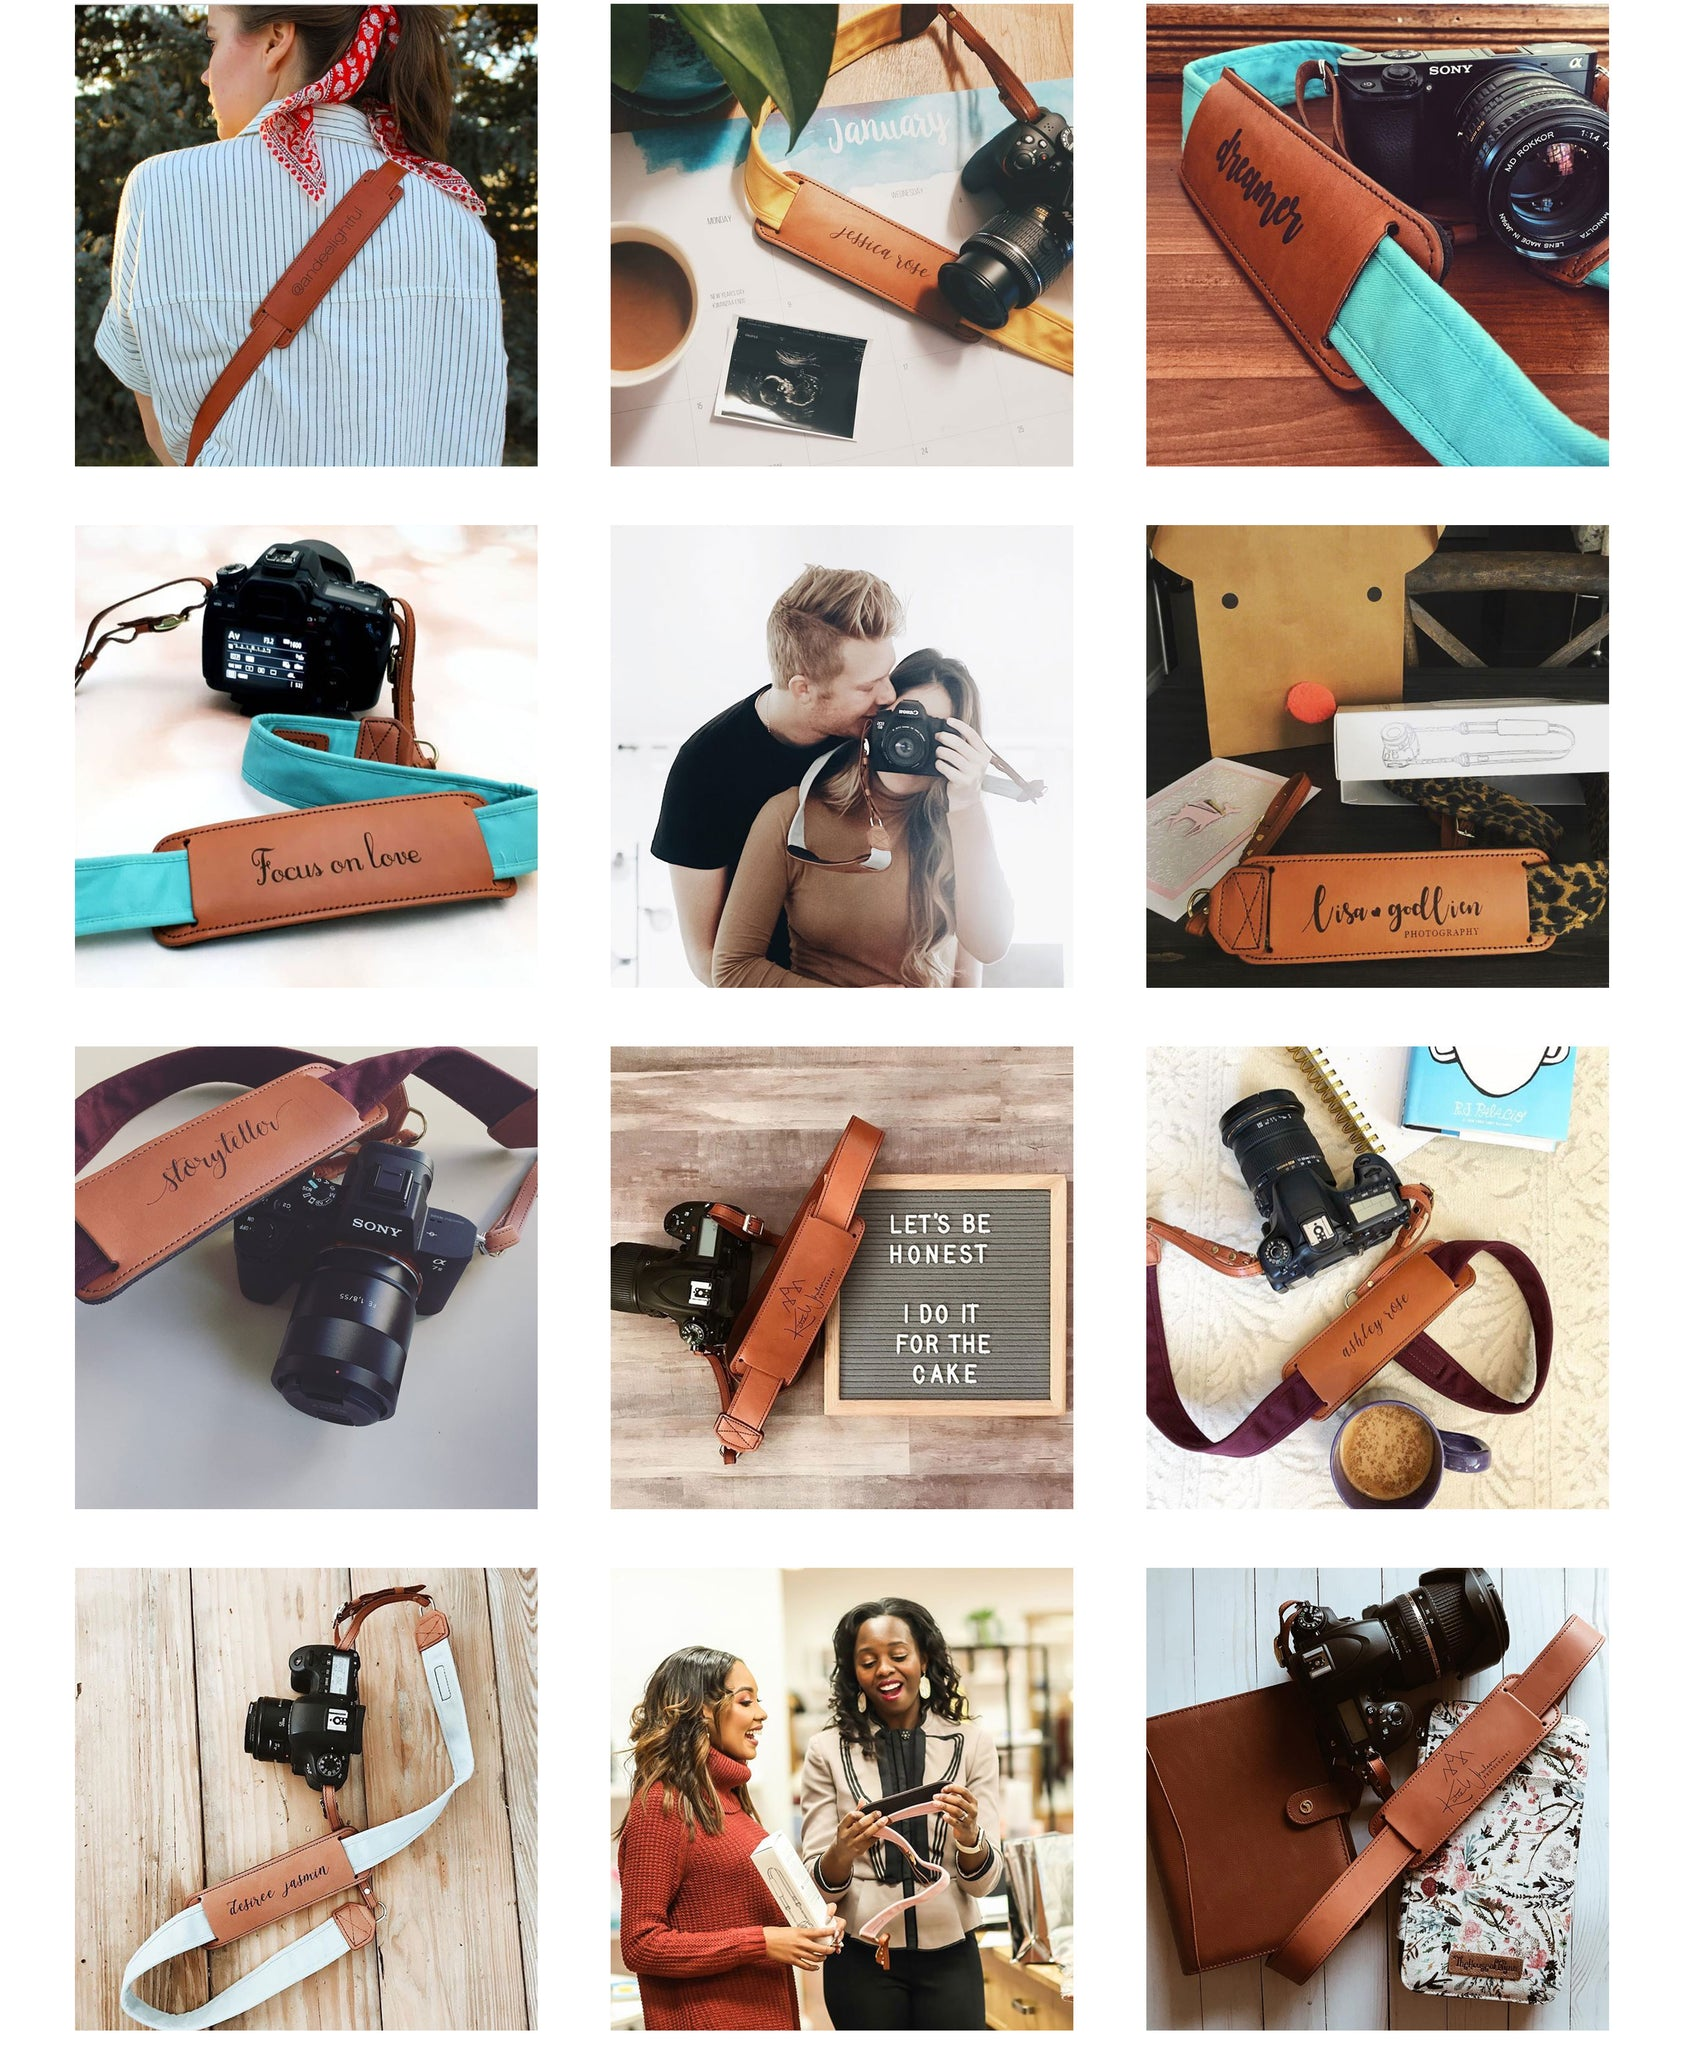 FOTO Blog | Our Favorite FOTO Holiday Gift Fotospottings